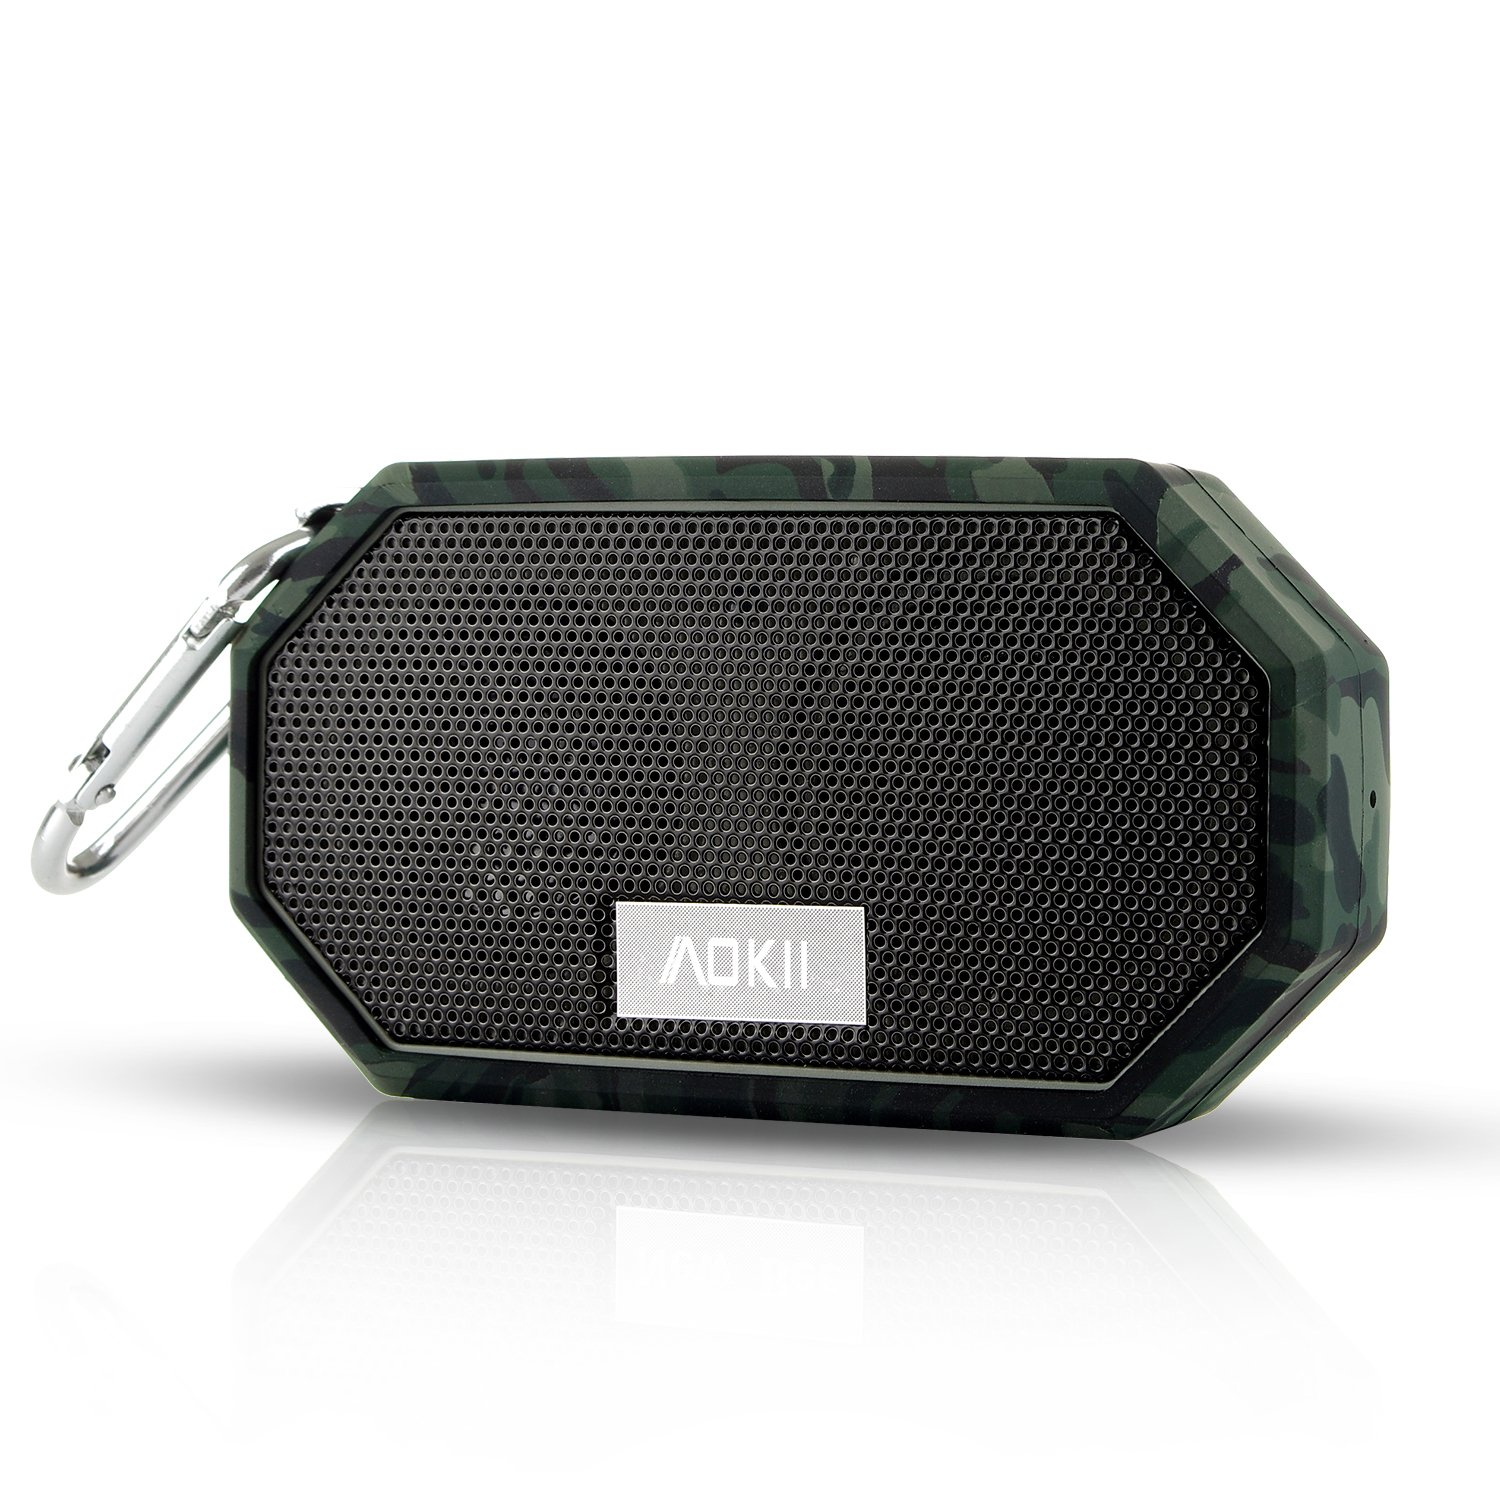 AOKII Waterproof Wireless Speakers,Unbreak waterproof Shockproof Bluetooth Stereo Speakers,outdoor Speakers for Climbing,Cycling, Hiking(Camouflage)